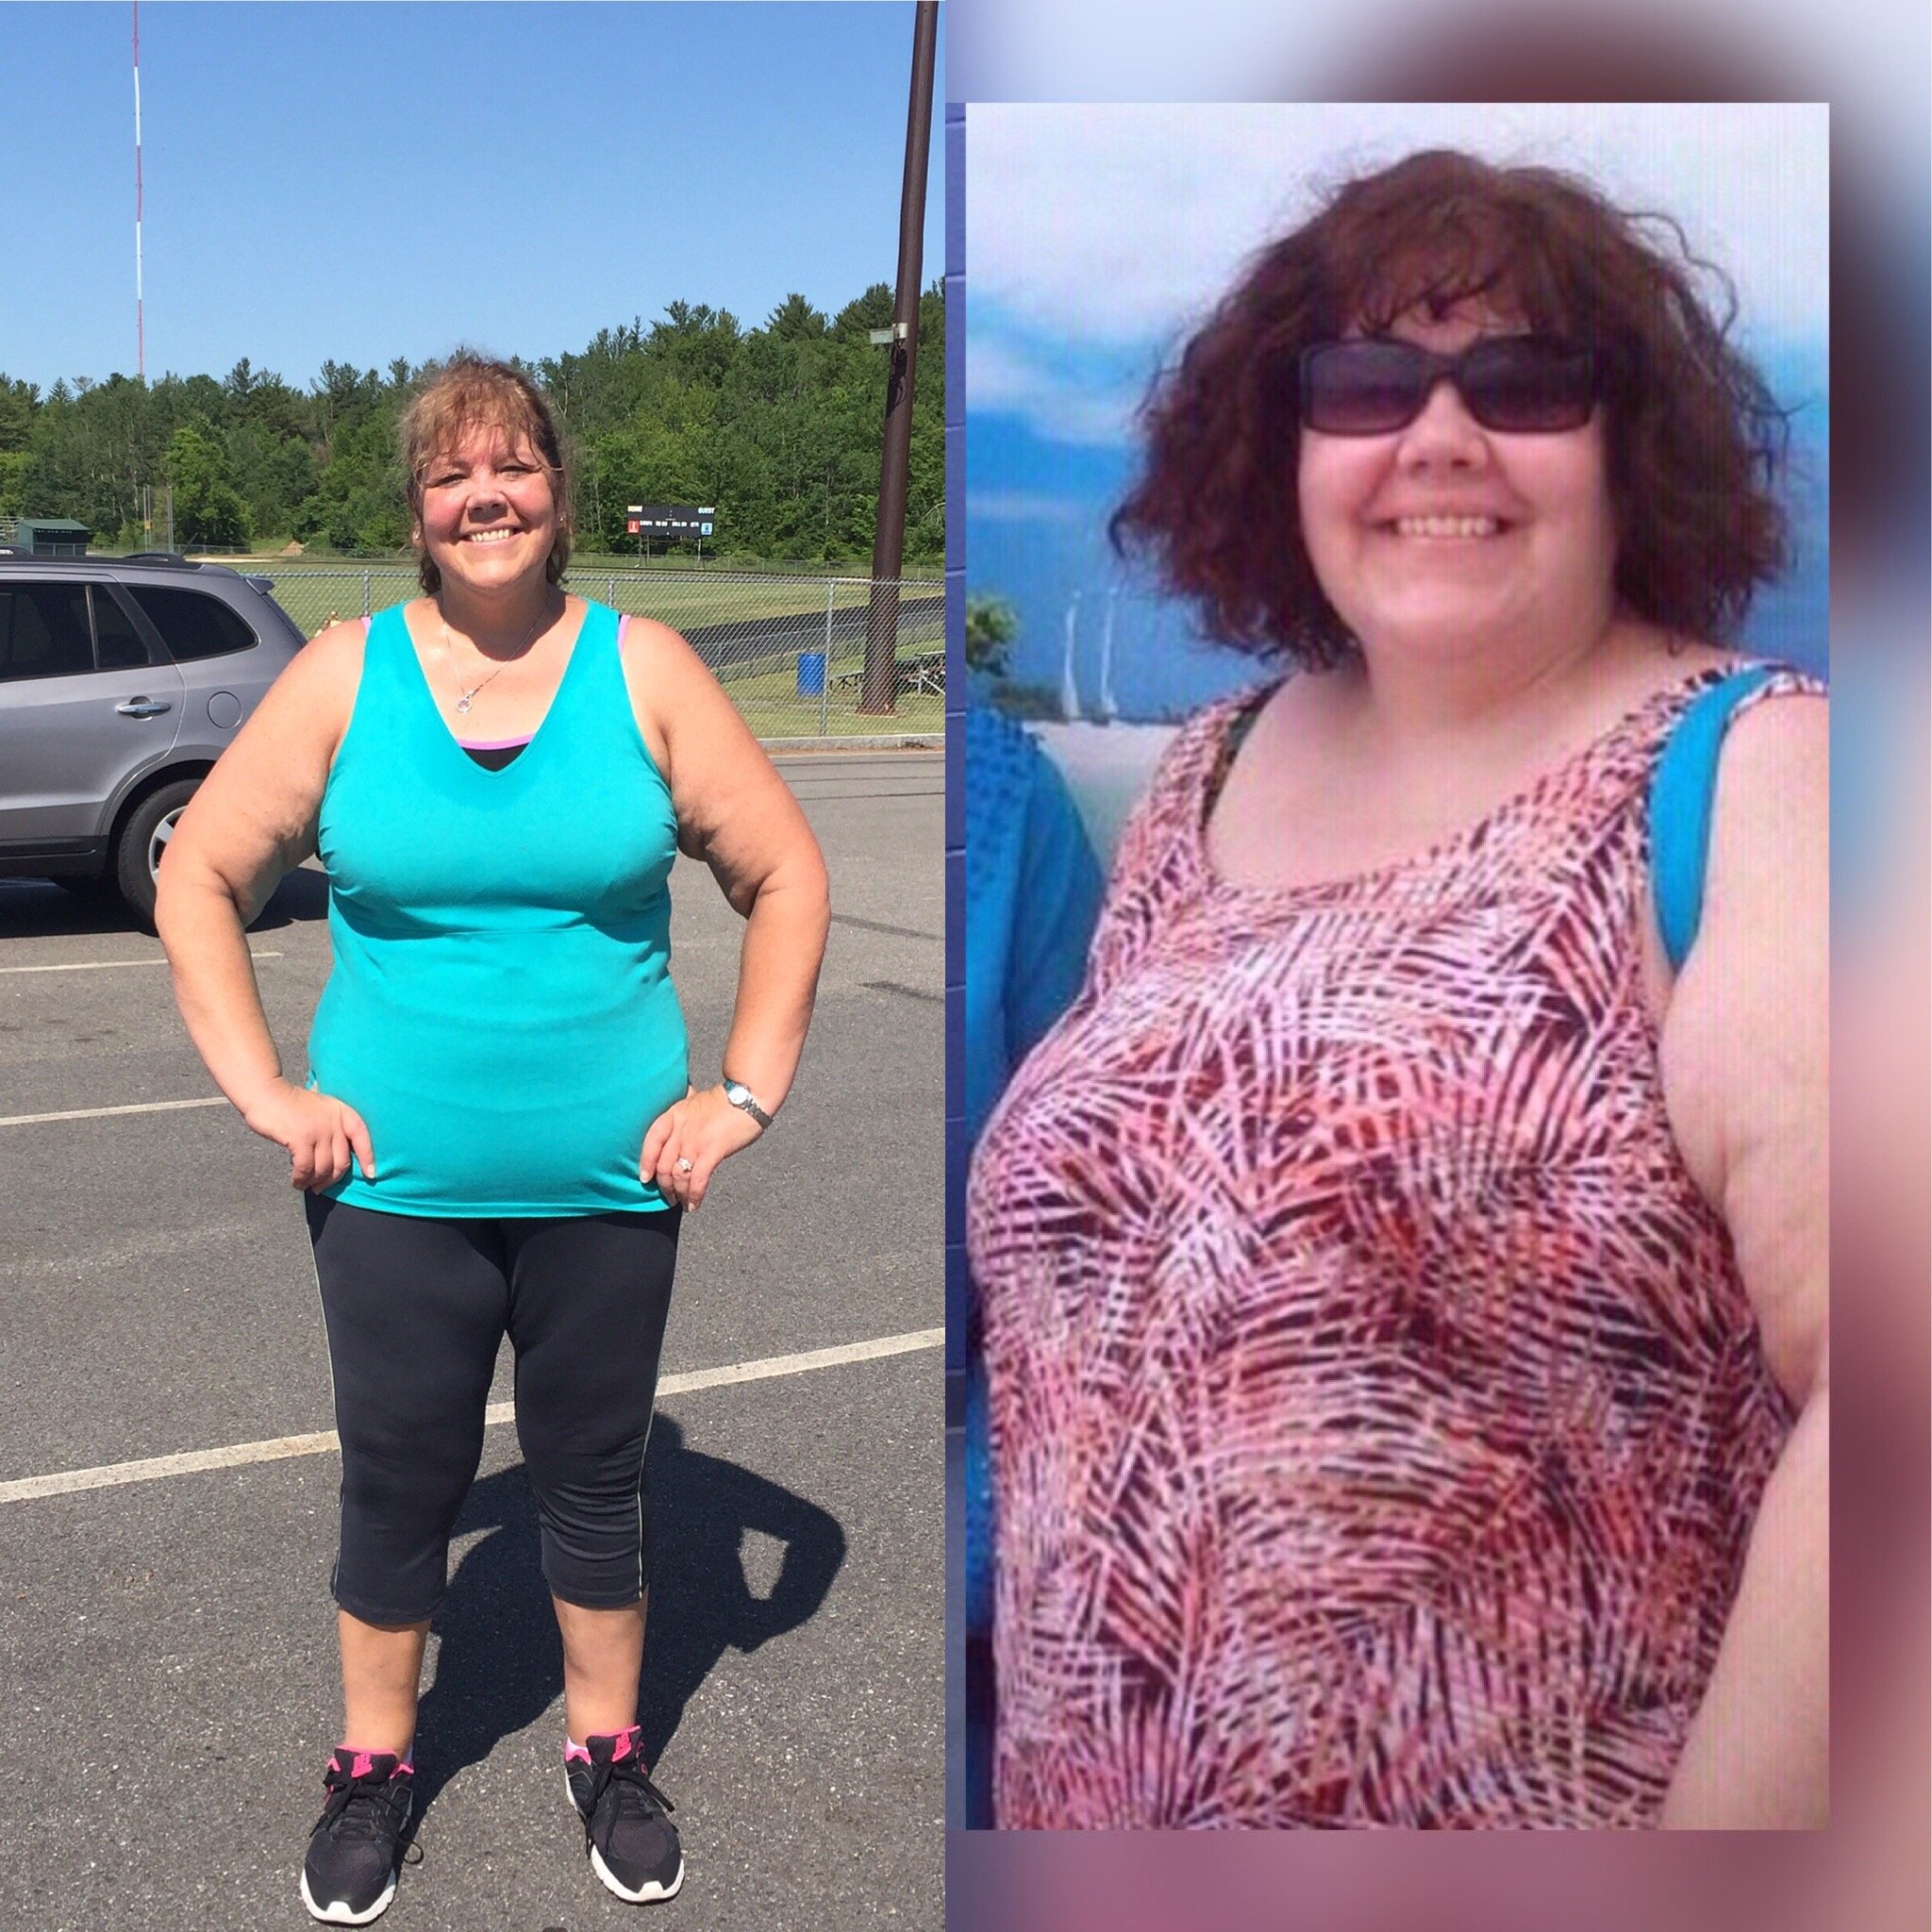 Barbara lost 112 pounds! See my before and after weight loss pictures, and read amazing weight loss success stories from real women and their best weight loss diet plans and programs. Motivation to lose weight with walking and inspiration from before and after weightloss pics and photos.